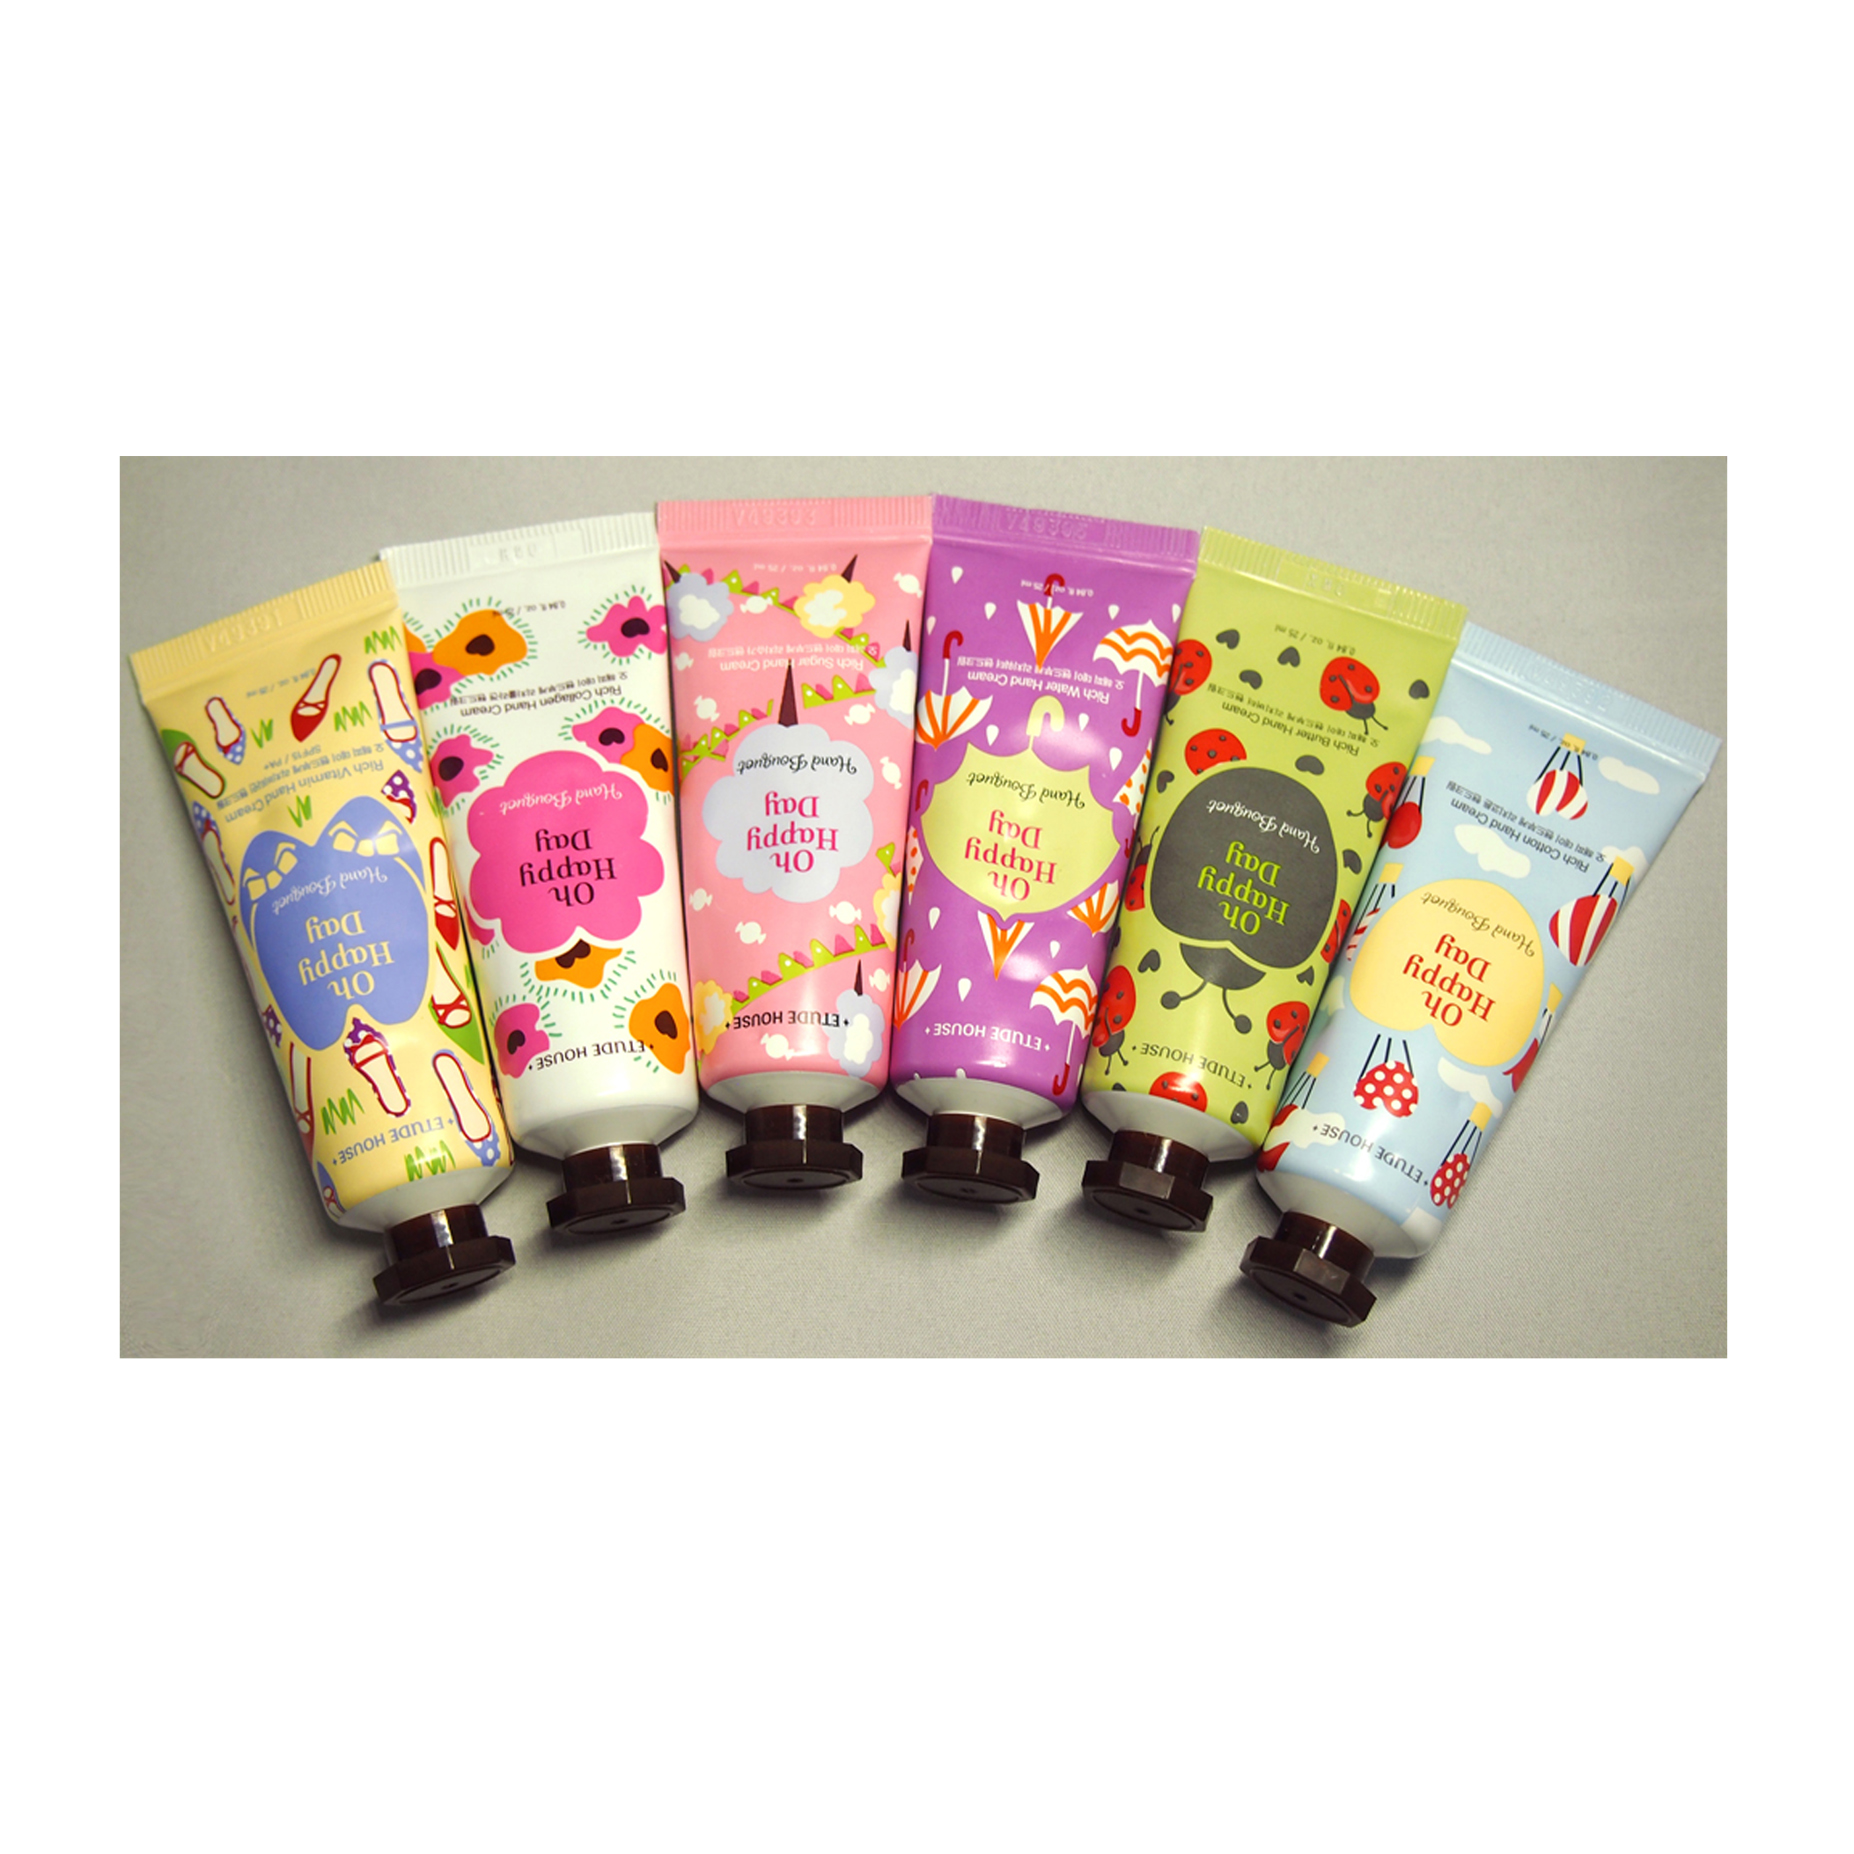 Etude-House-Oh-happy-day-hand-bouquet-hand-cream-25ml-6-Types-Pick-one